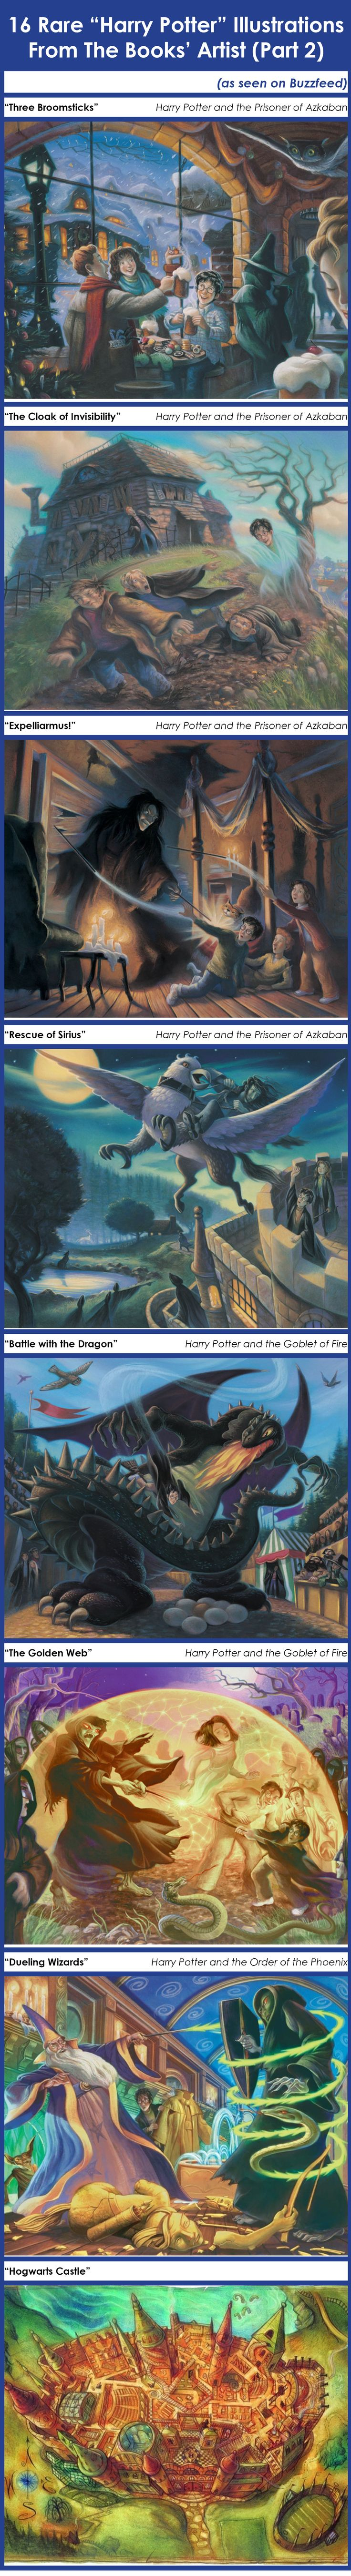 "16 Rare ""Harry Potter"" Illustrations From The Books' Artist Mary GrandPre"